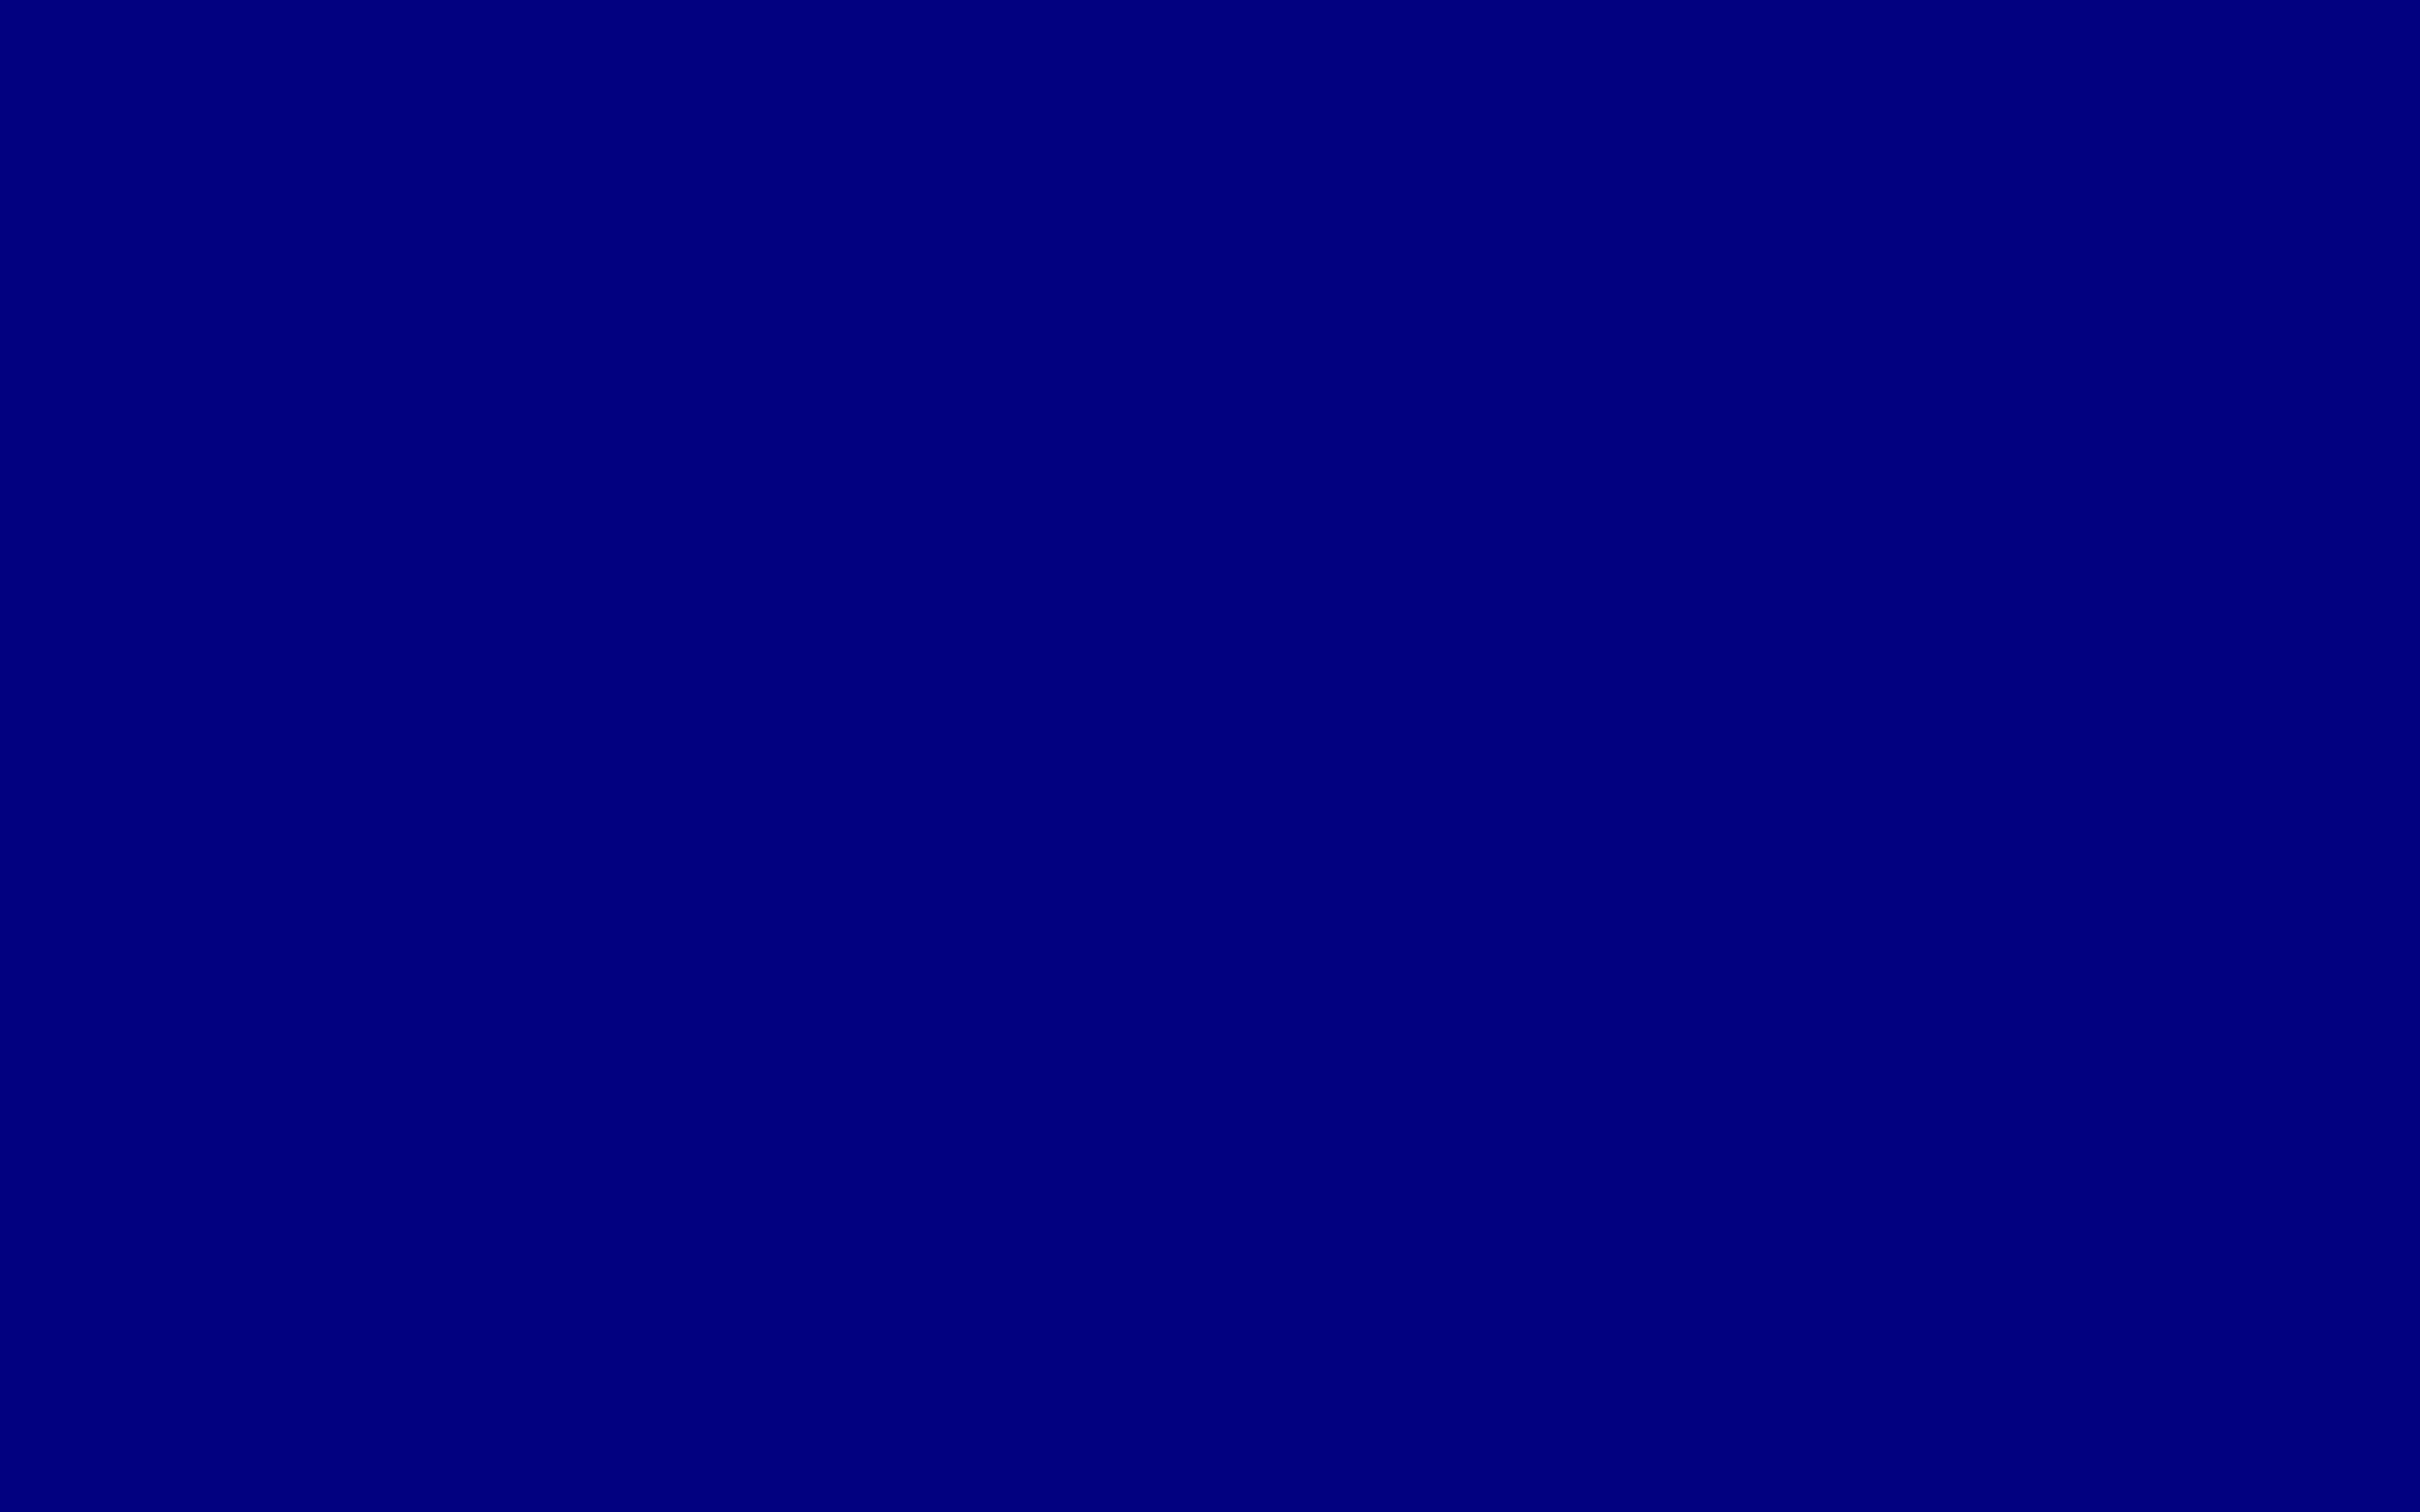 Royal Blue Backgrounds (43+ images)